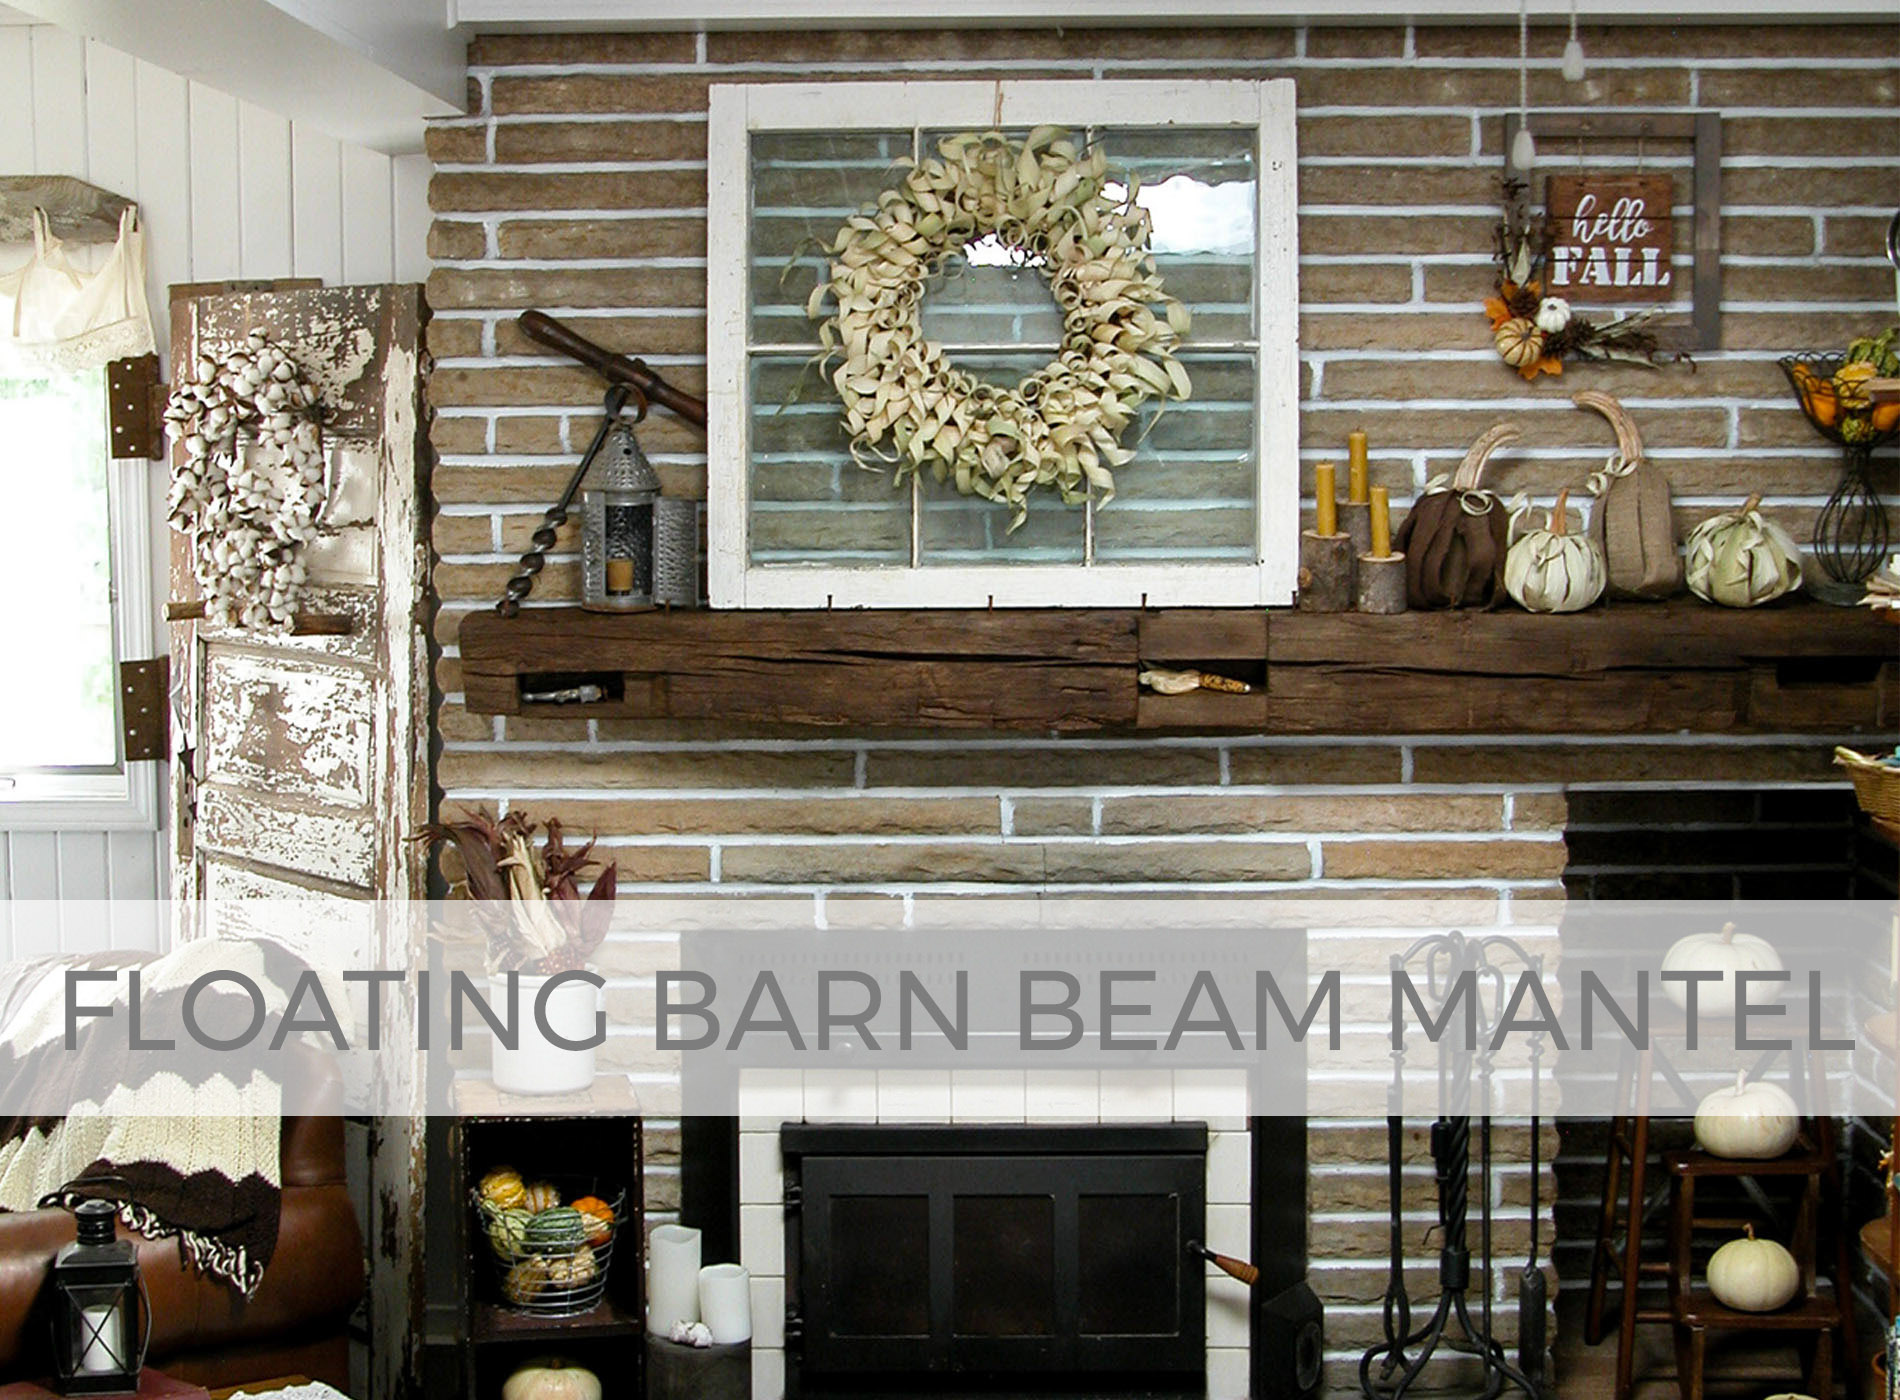 DIY Floating Barn Beam Mantel by Larissa of Prodigal Pieces | prodigalpieces.com #prodigalpieces